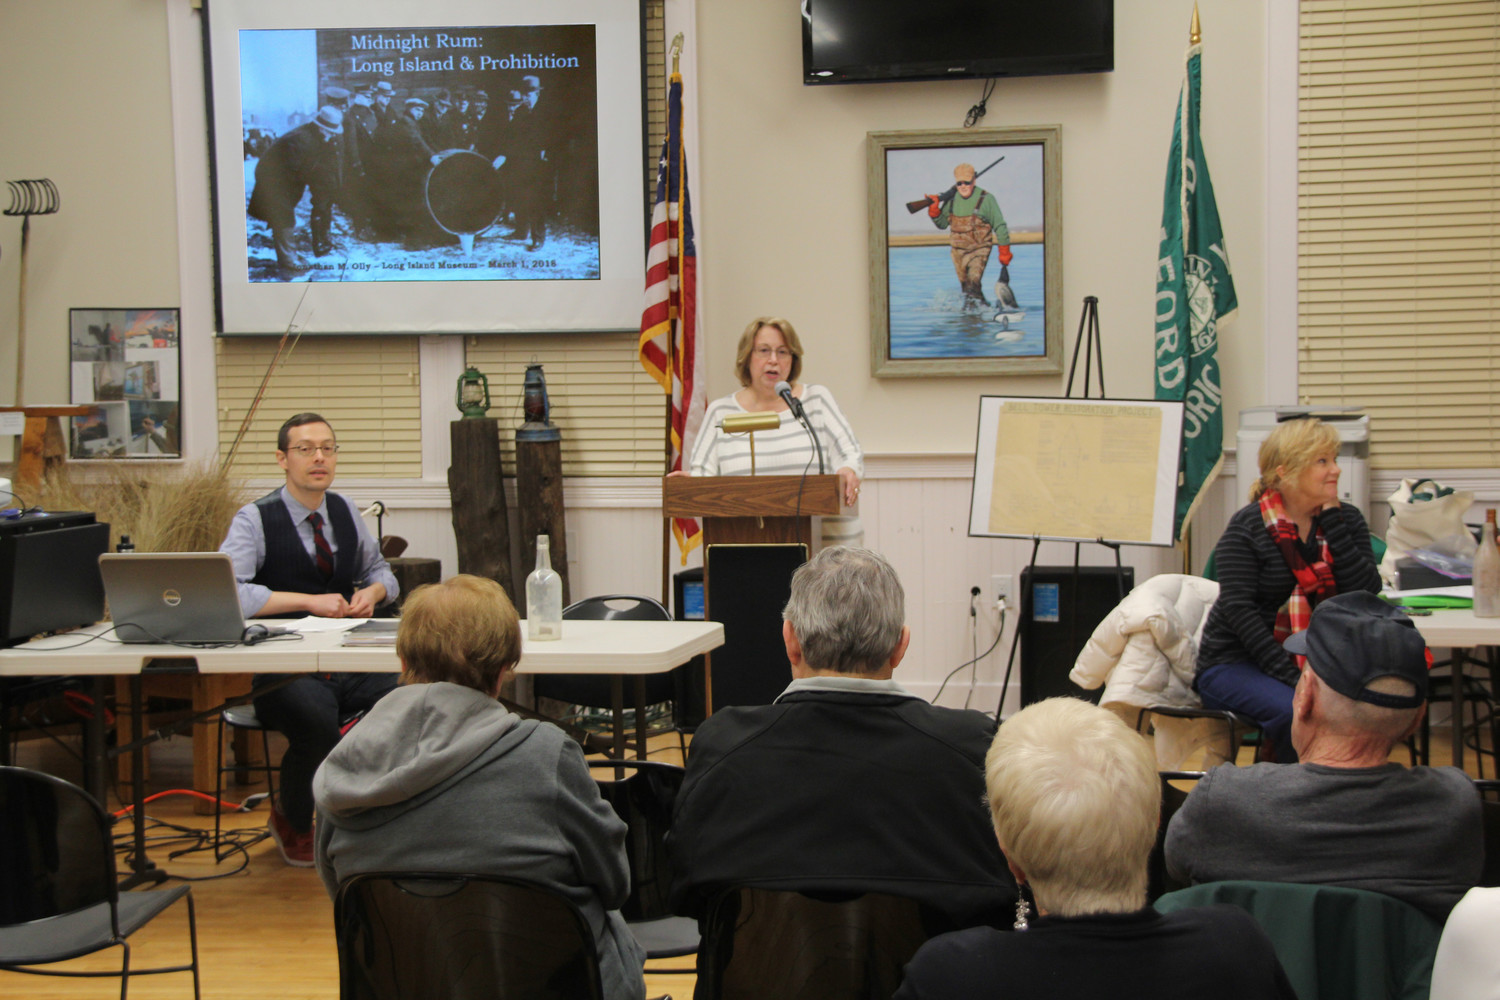 Judy Bongiovi, President - Seaford Historical Society addresses the audience.